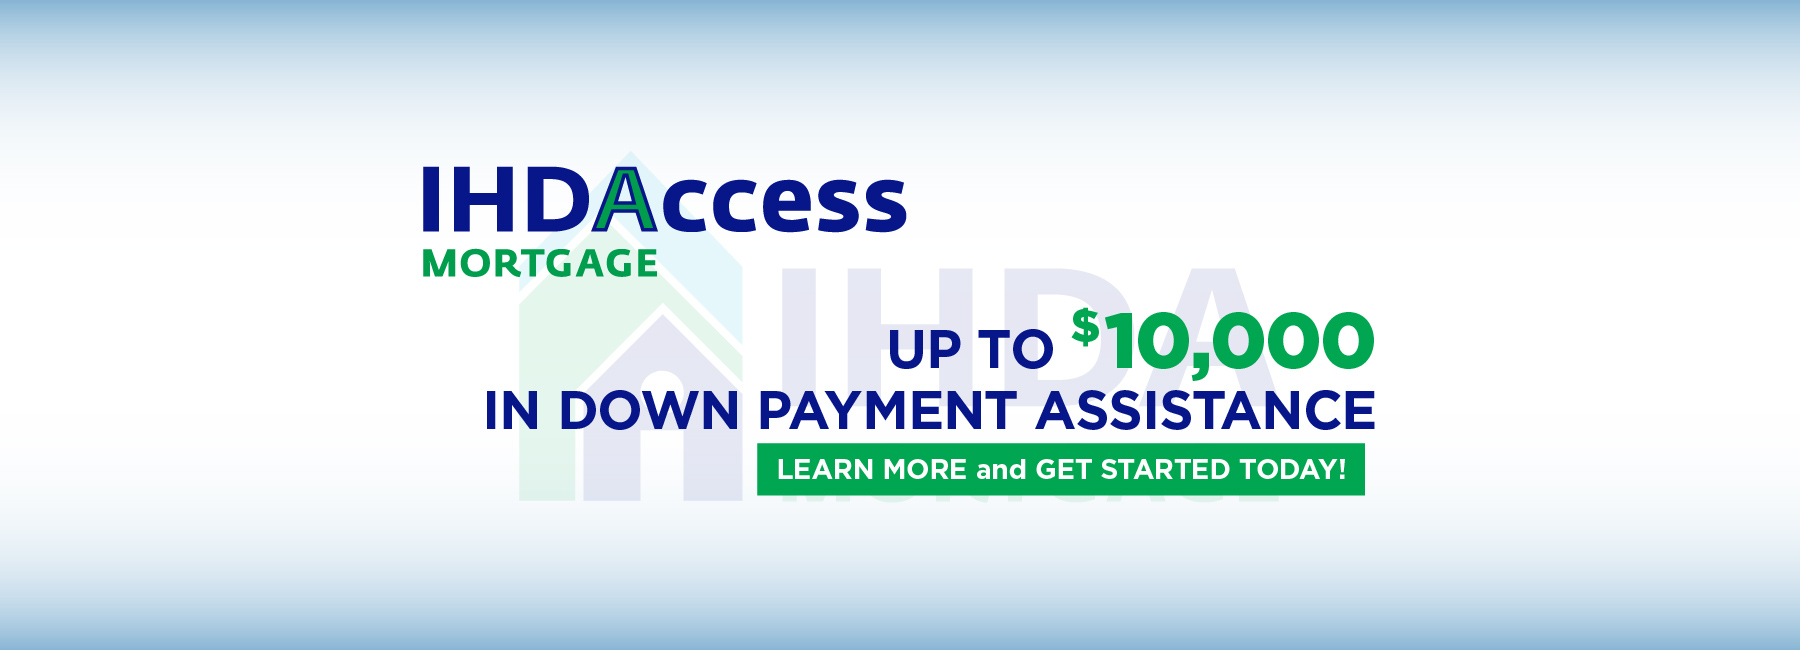 IHDA Access Mortgage